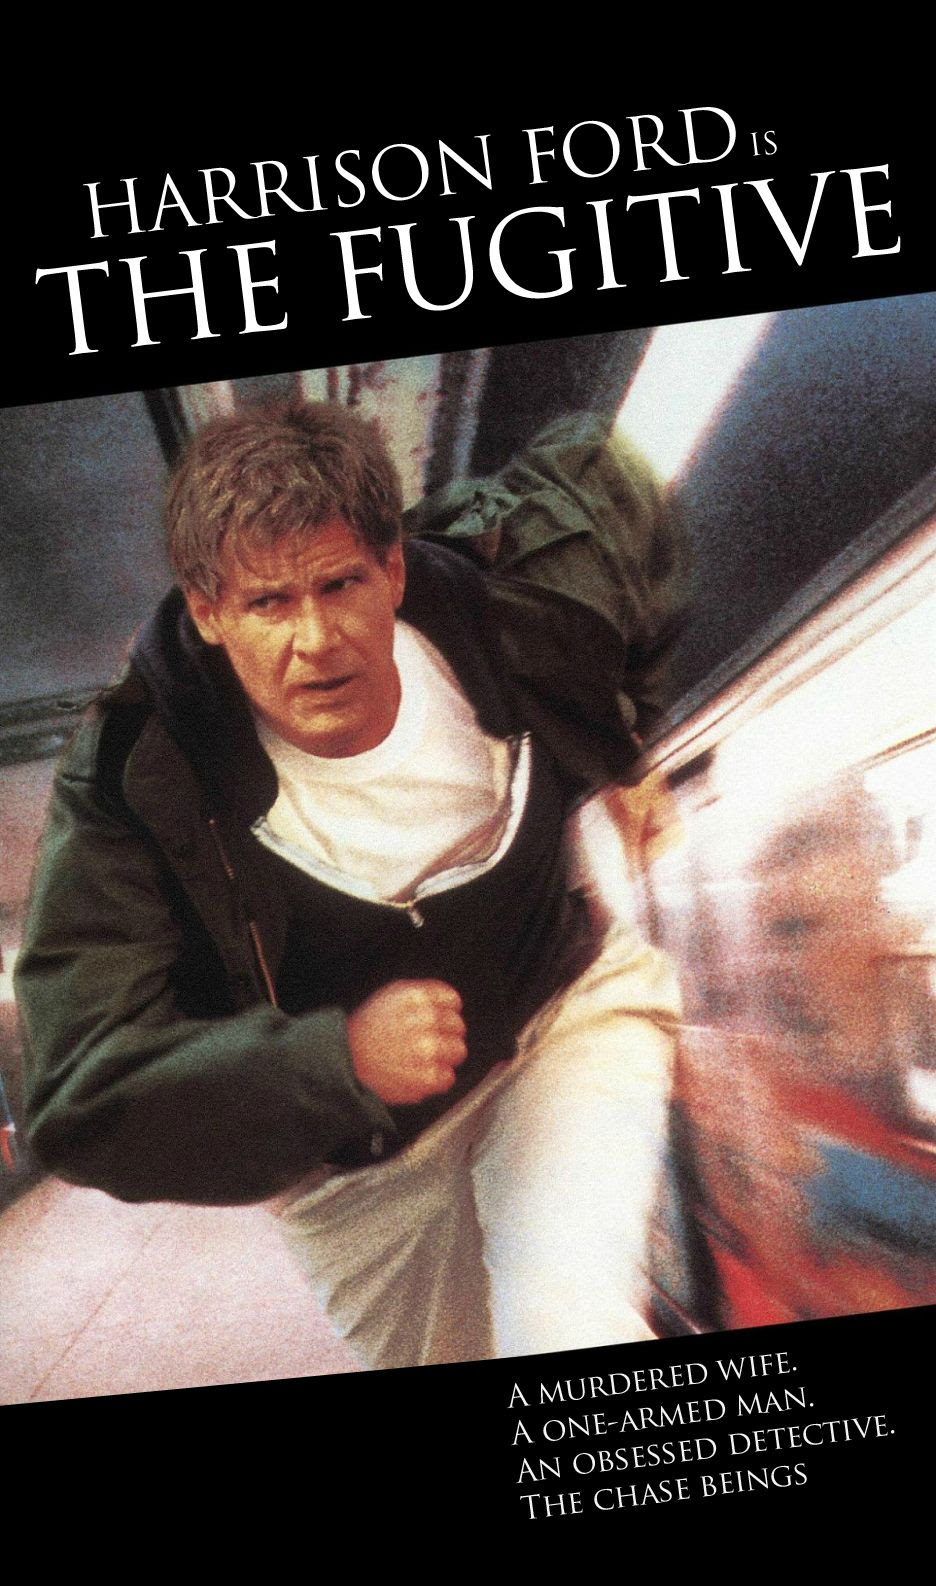 Font used in the movie poster for The Fugitive? : identifythisfont